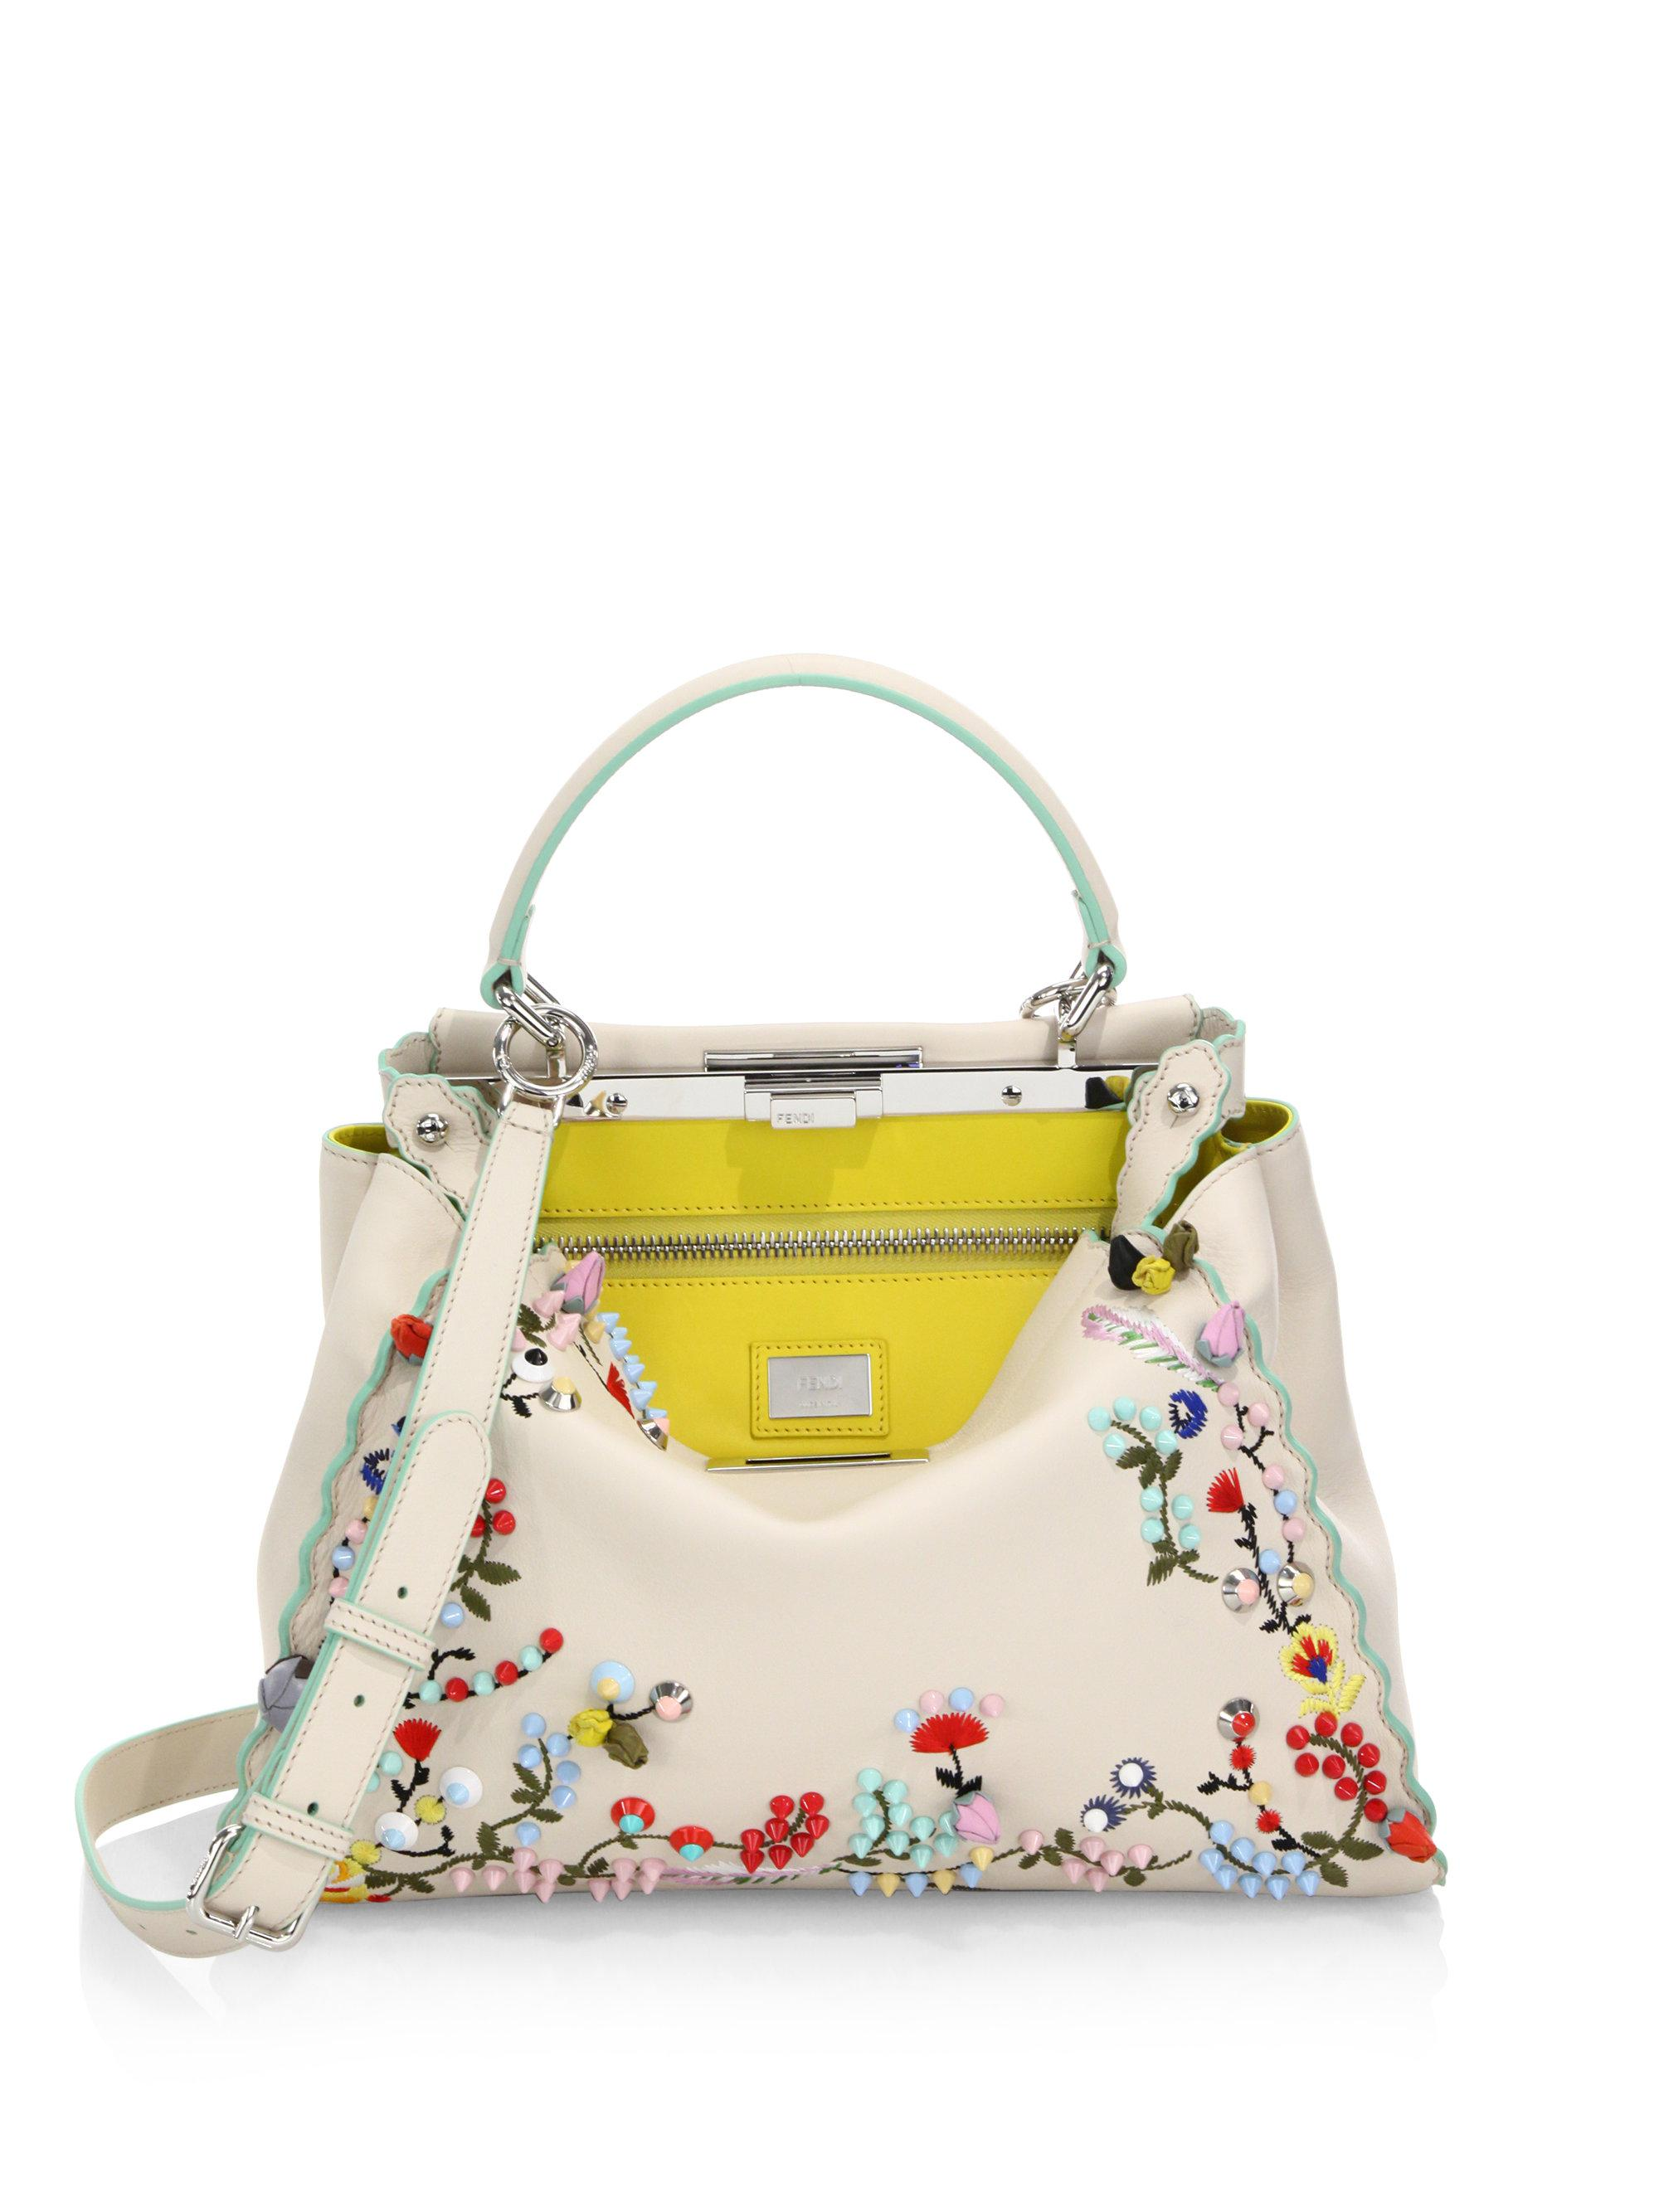 26a8d428a0f Lyst - Fendi Peekaboo Studded Floral-embroidered Leather Satchel